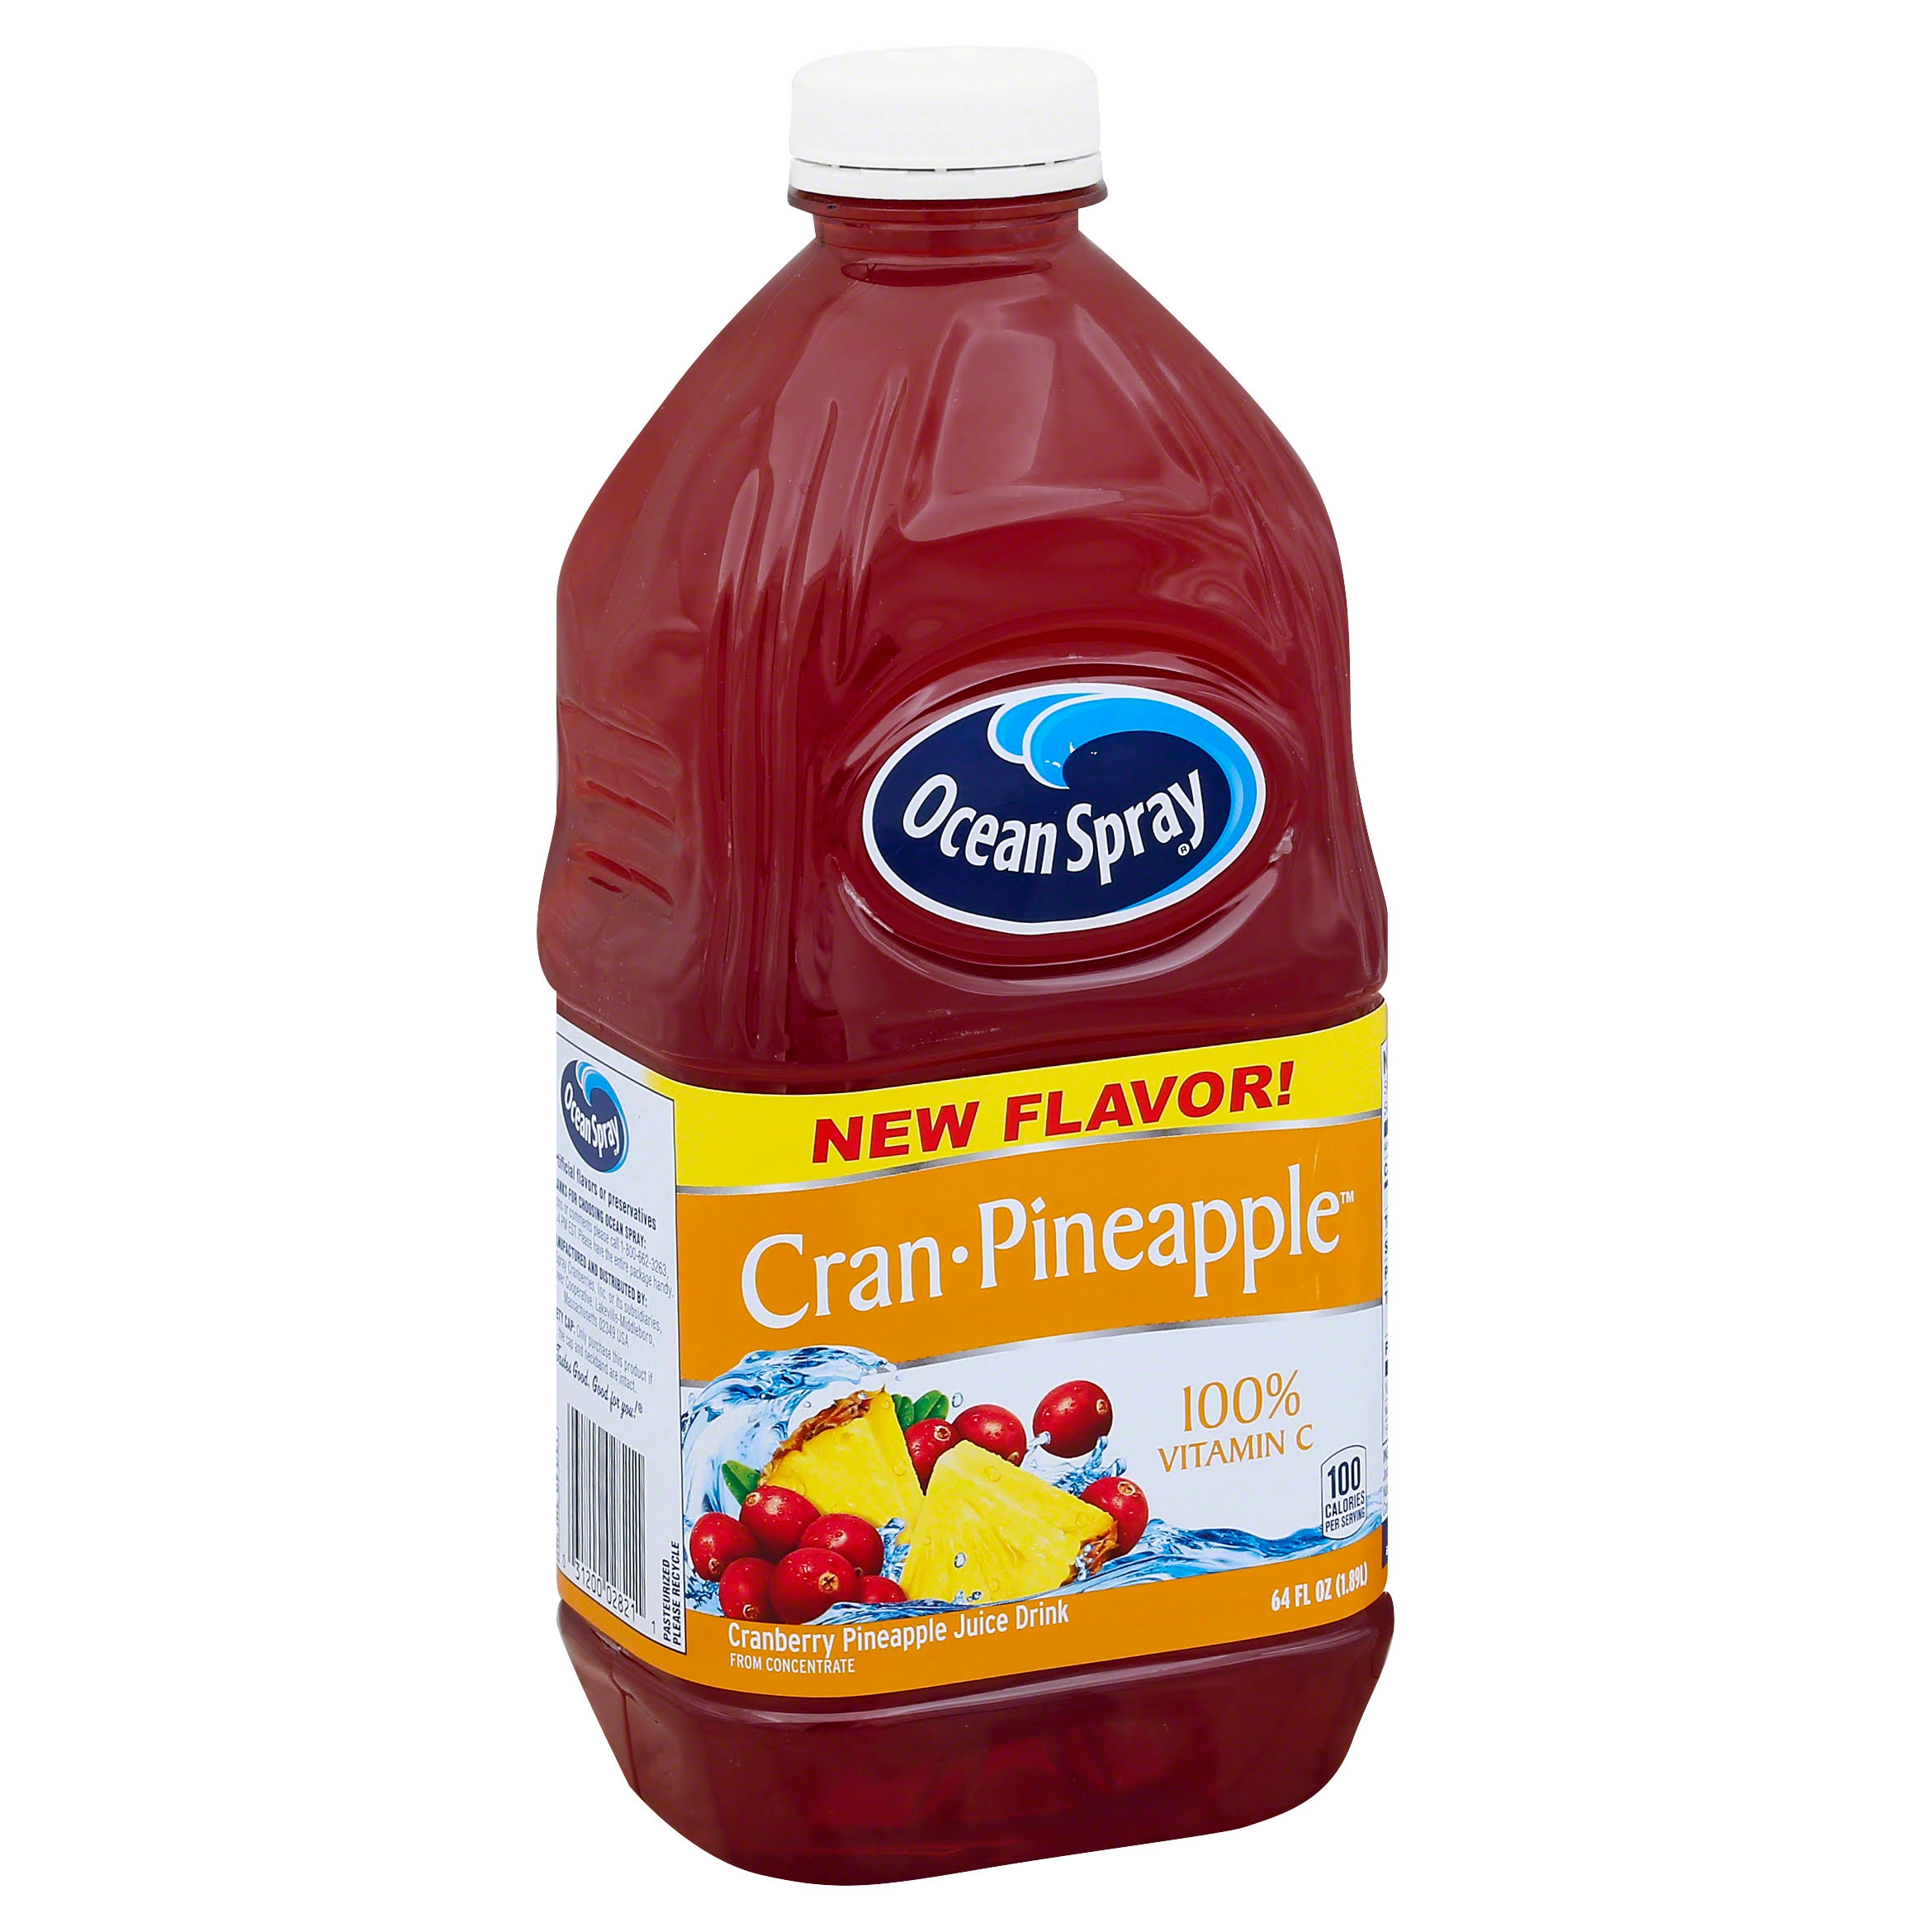 Ocean Spray Cranberry Pineapple Juice Drink - 64oz